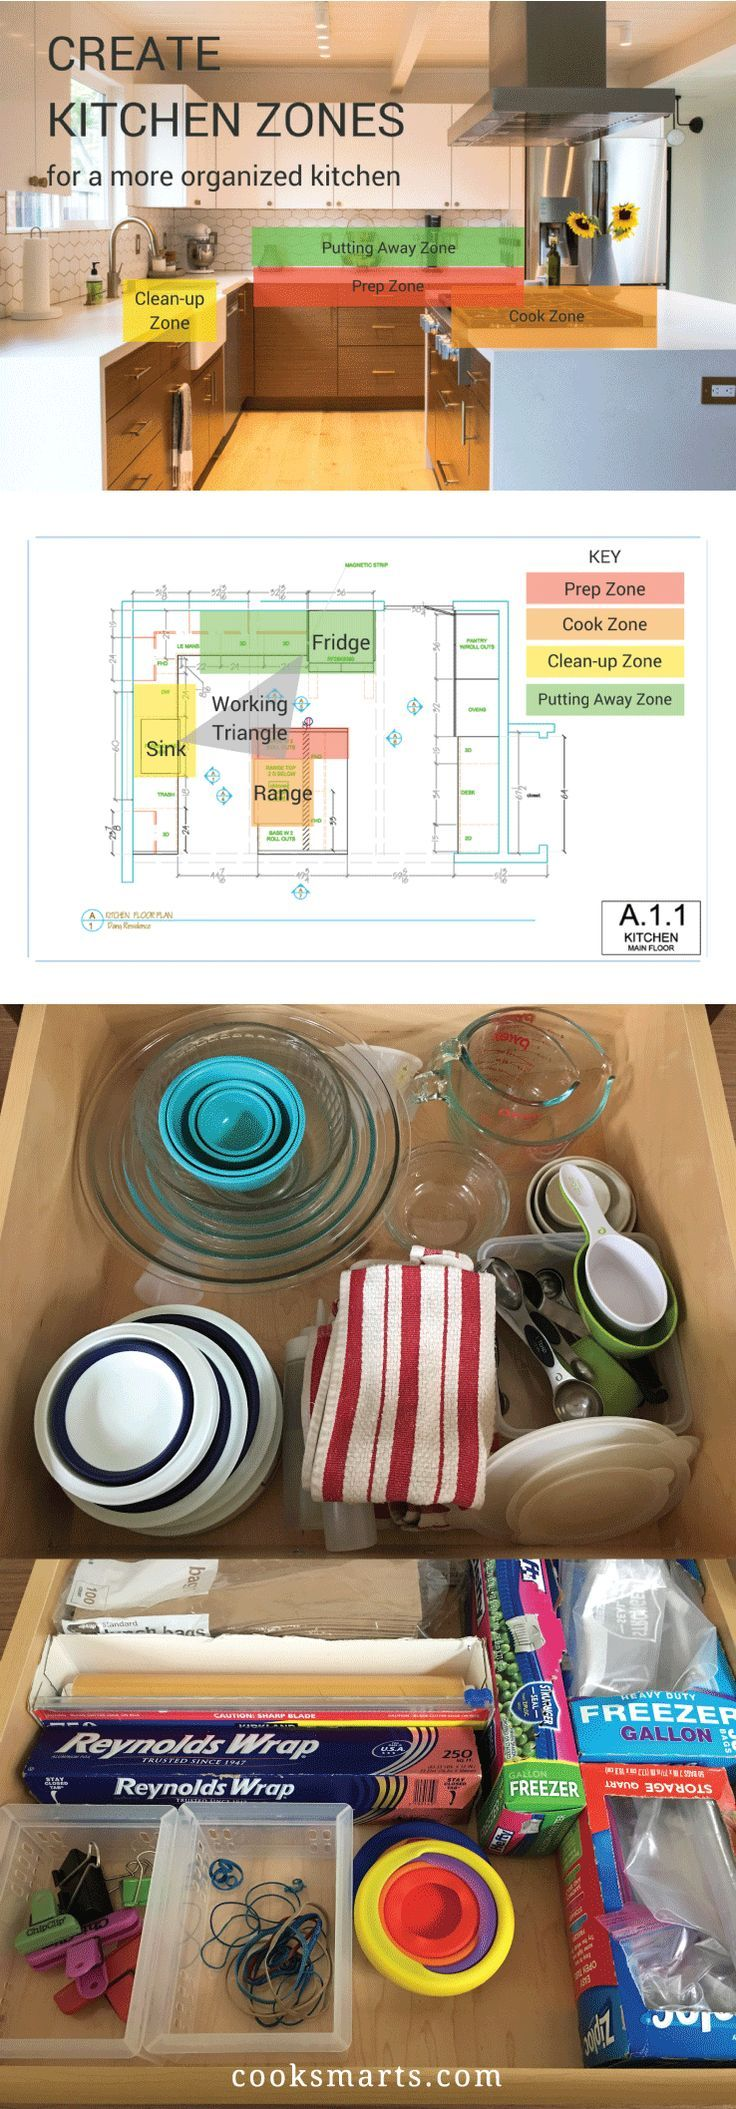 How to Organize Your Cabinets into Kitchen Zones is part of Kitchen Organization Zones - Now that my new kitchen reno is complete, I'm ready to get organized and start cooking with ease and efficiency! Learn how I organize my cooking space into the 4 Kitchen Zones below  If I hadn't started Cook Smarts but still wanted to leave the corporate world, I think